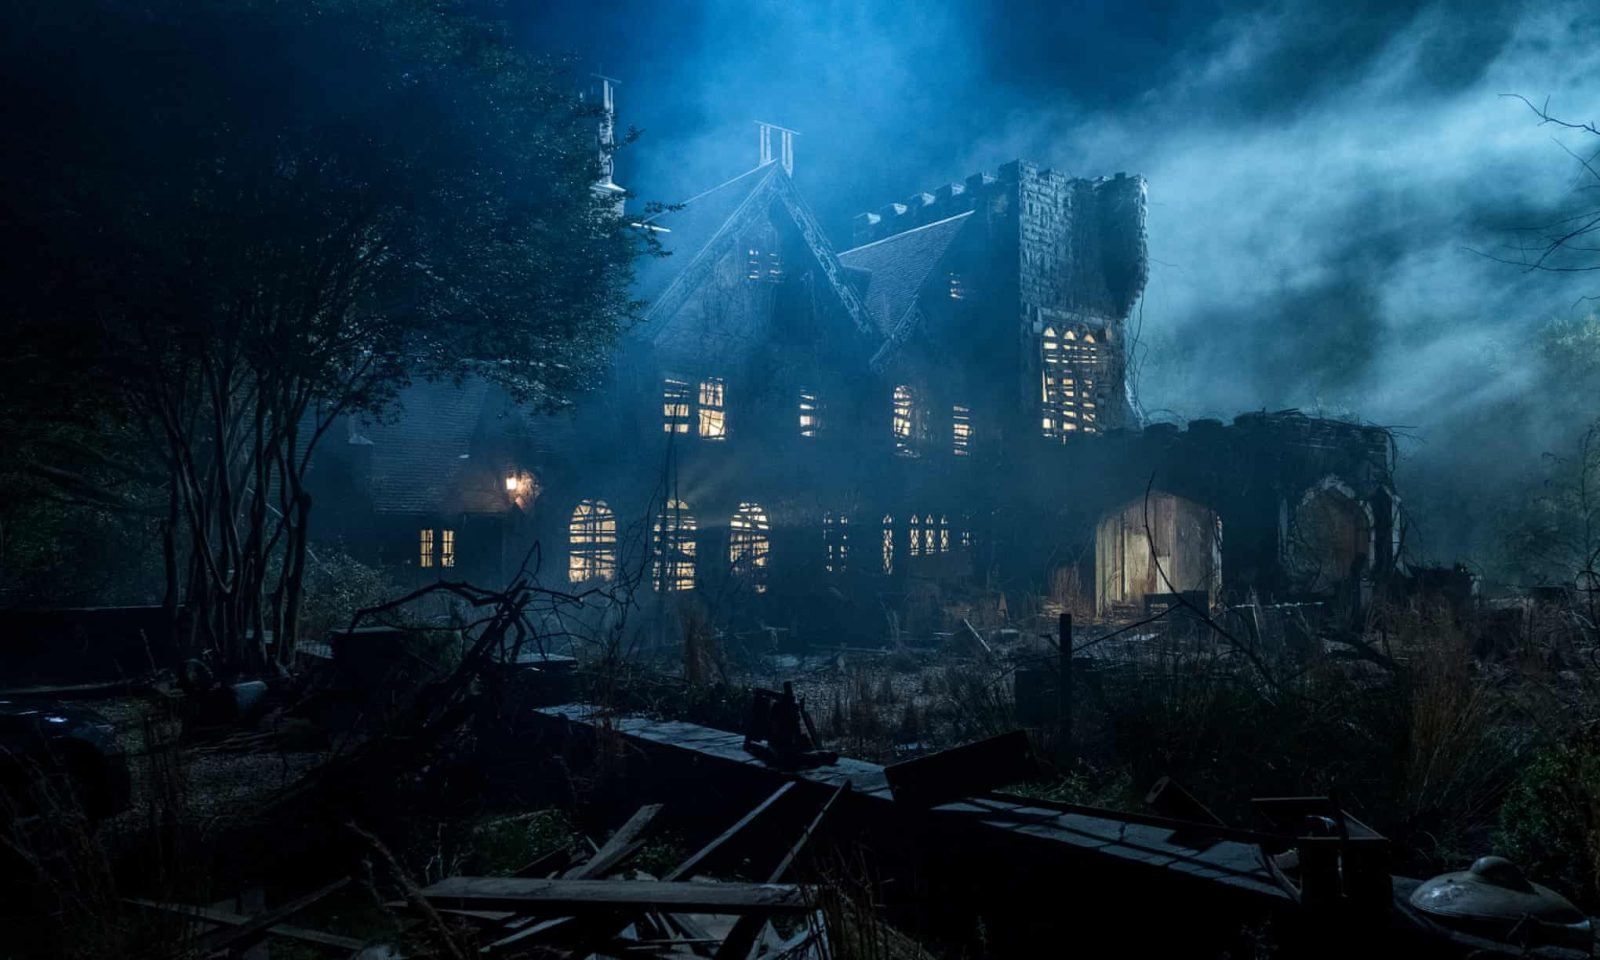 A spine-tingling 'Horrors of Hillhouse' experience is coming to Manchester, The Manc